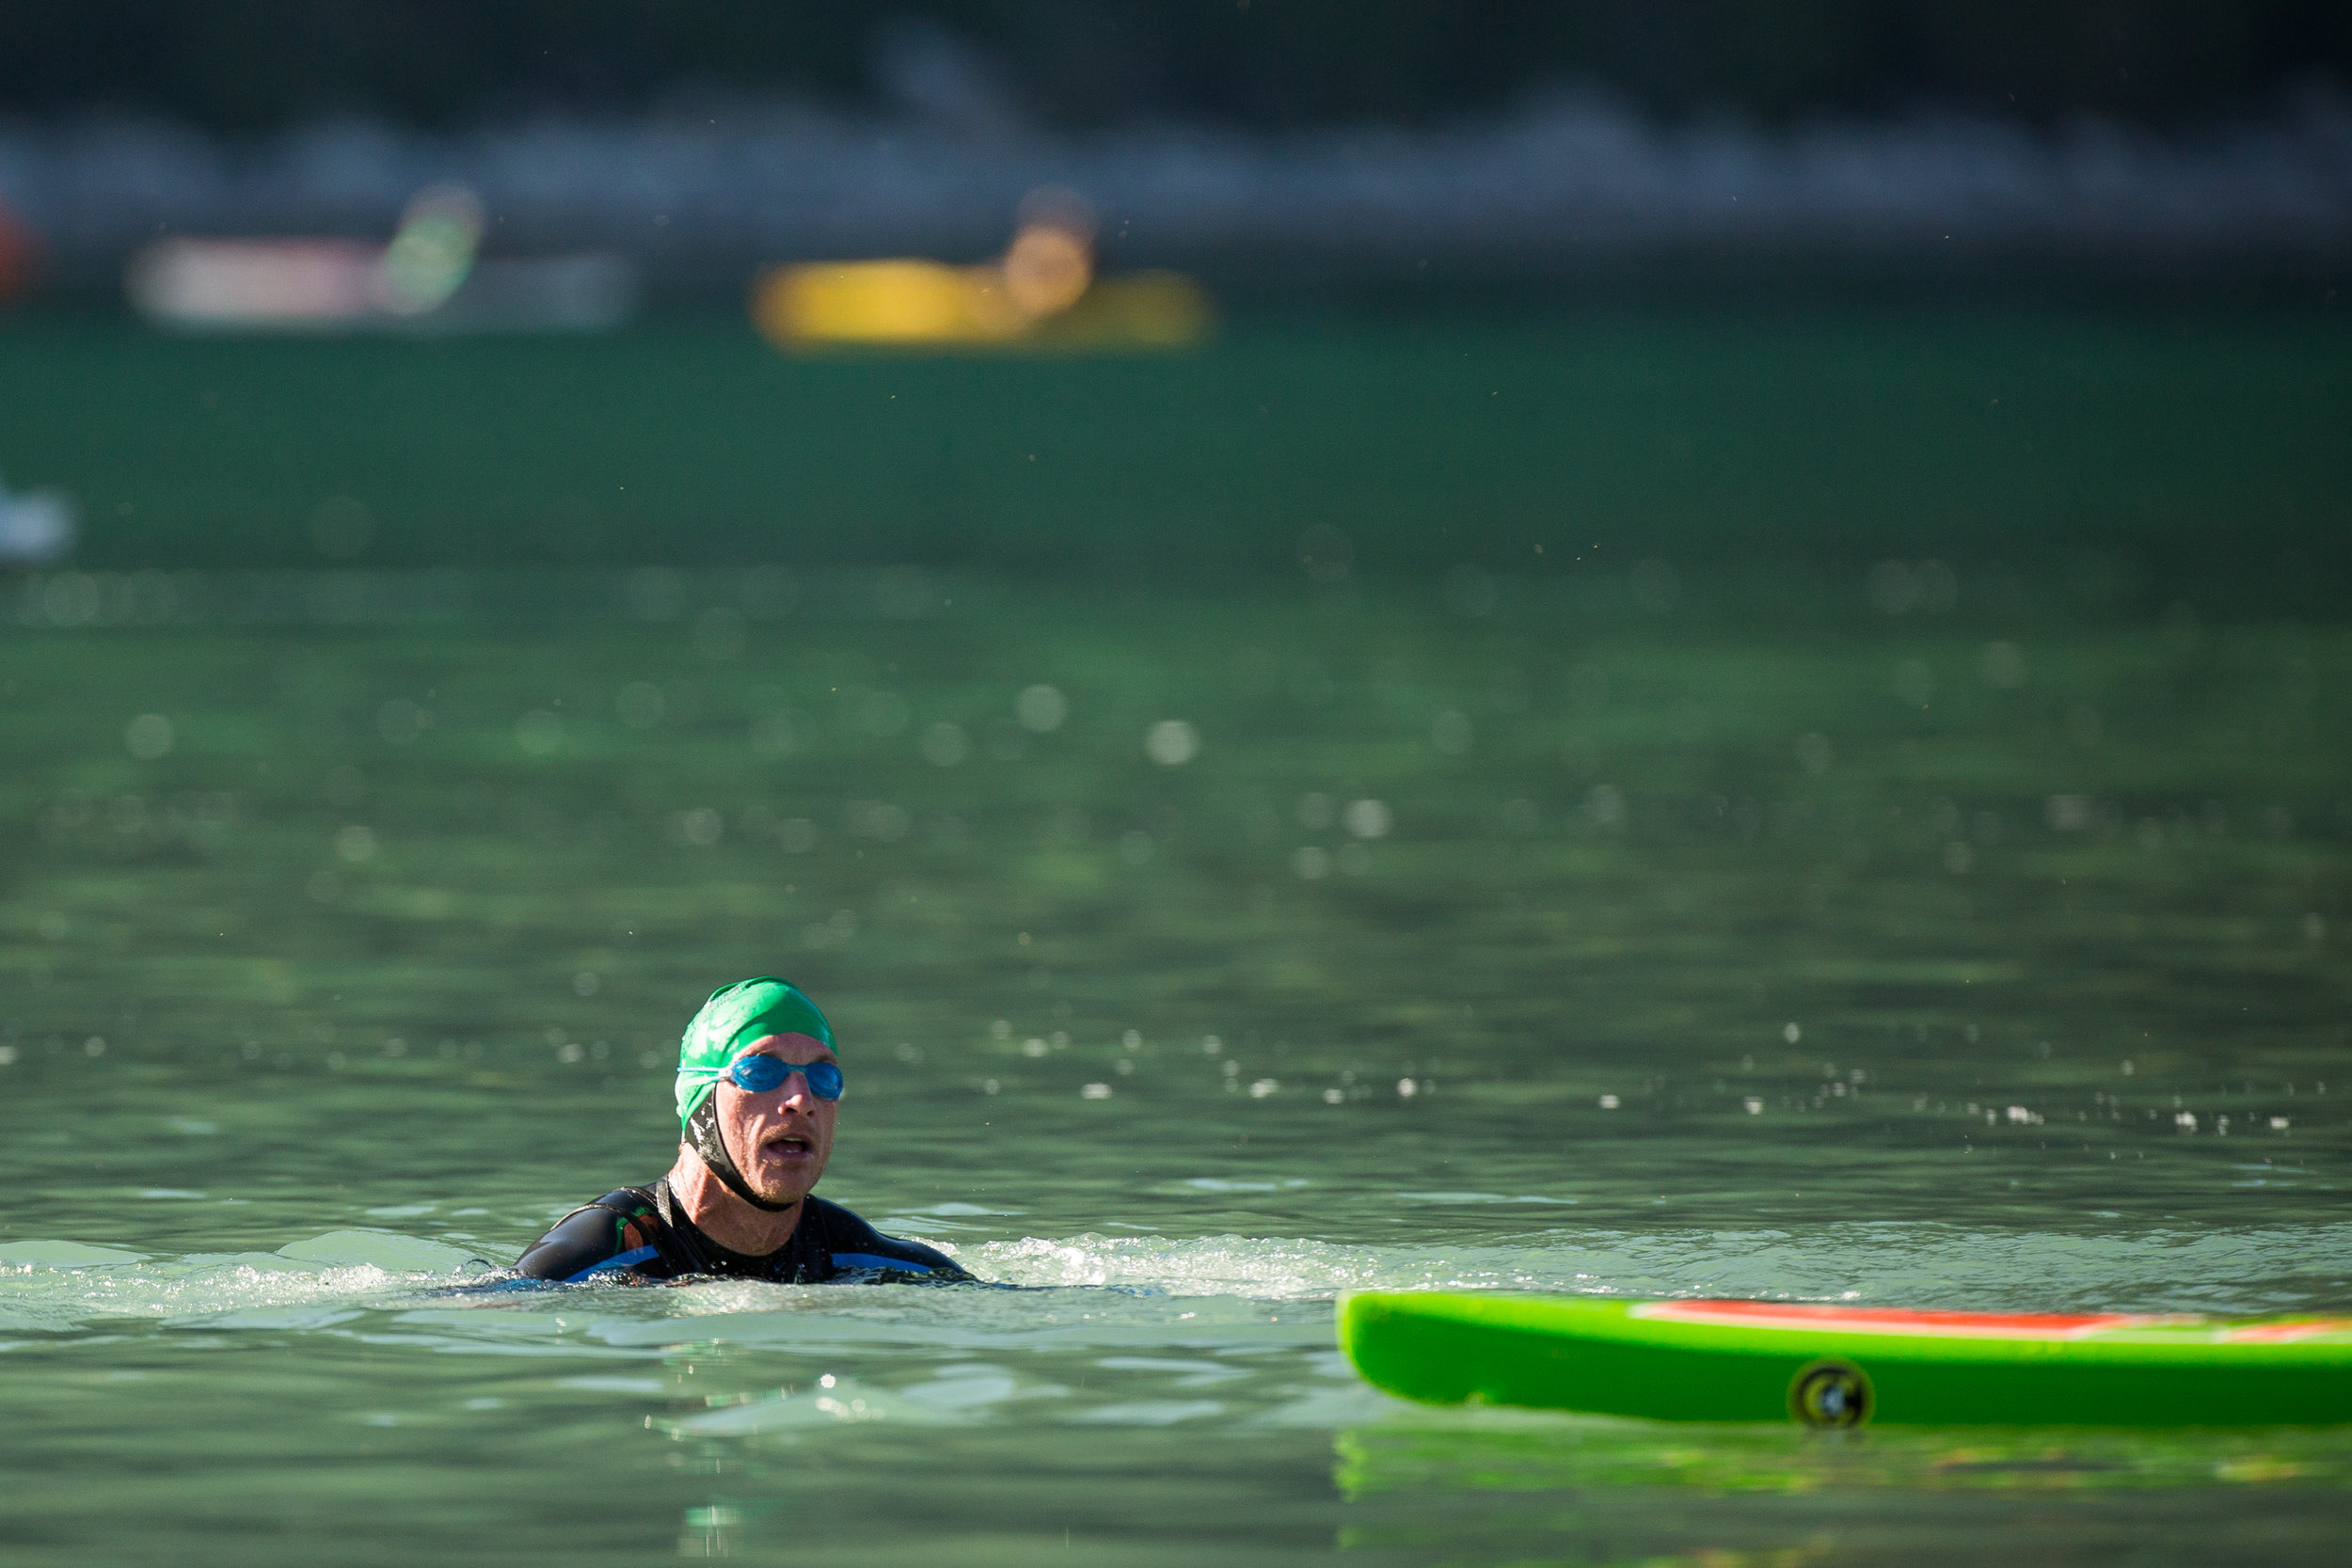 Swimming the June Lake Tri in 2013. Photo by Minaret Photography